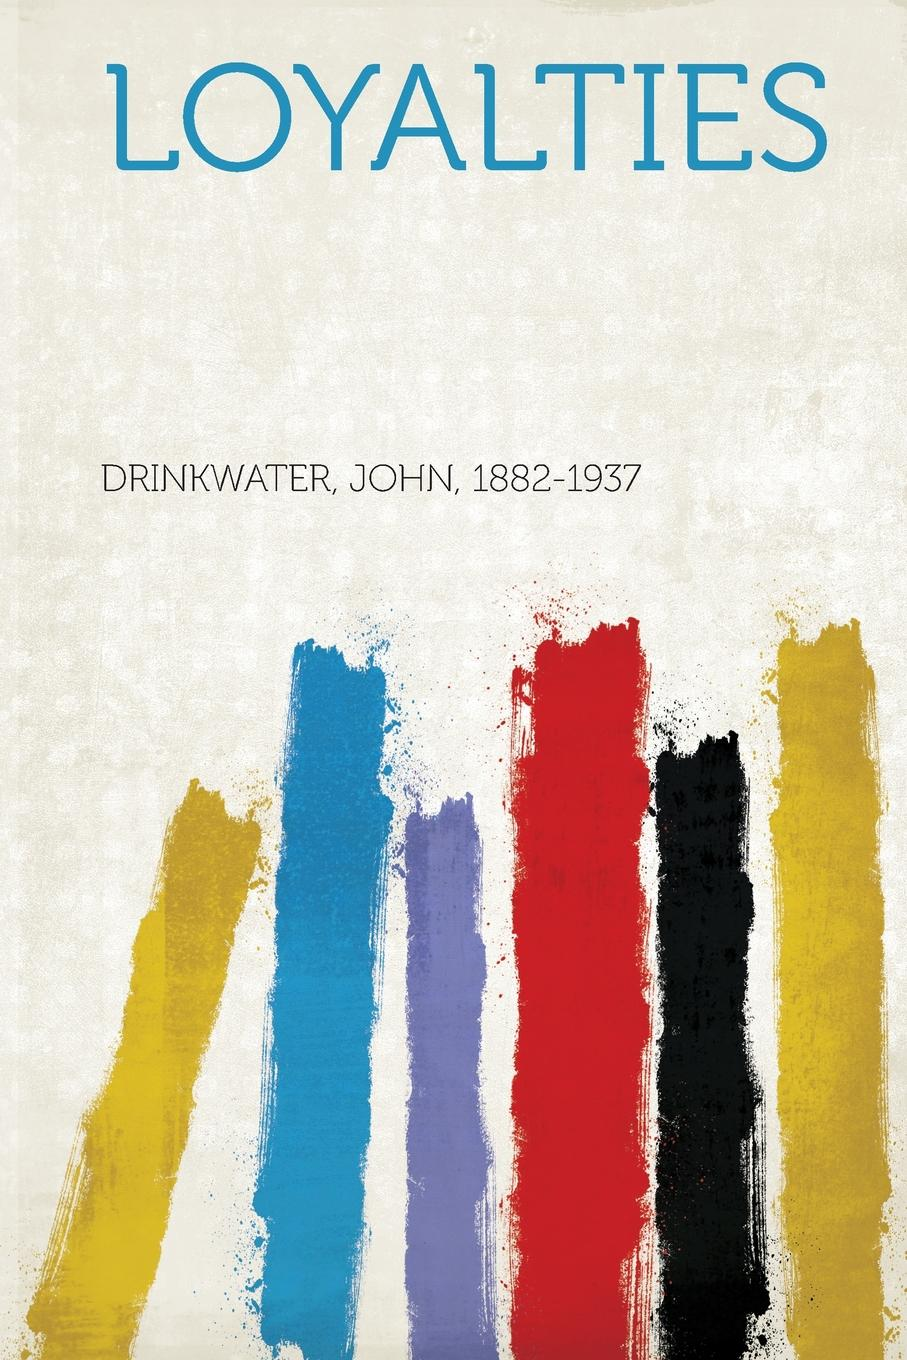 Drinkwater John 1882-1937 Loyalties